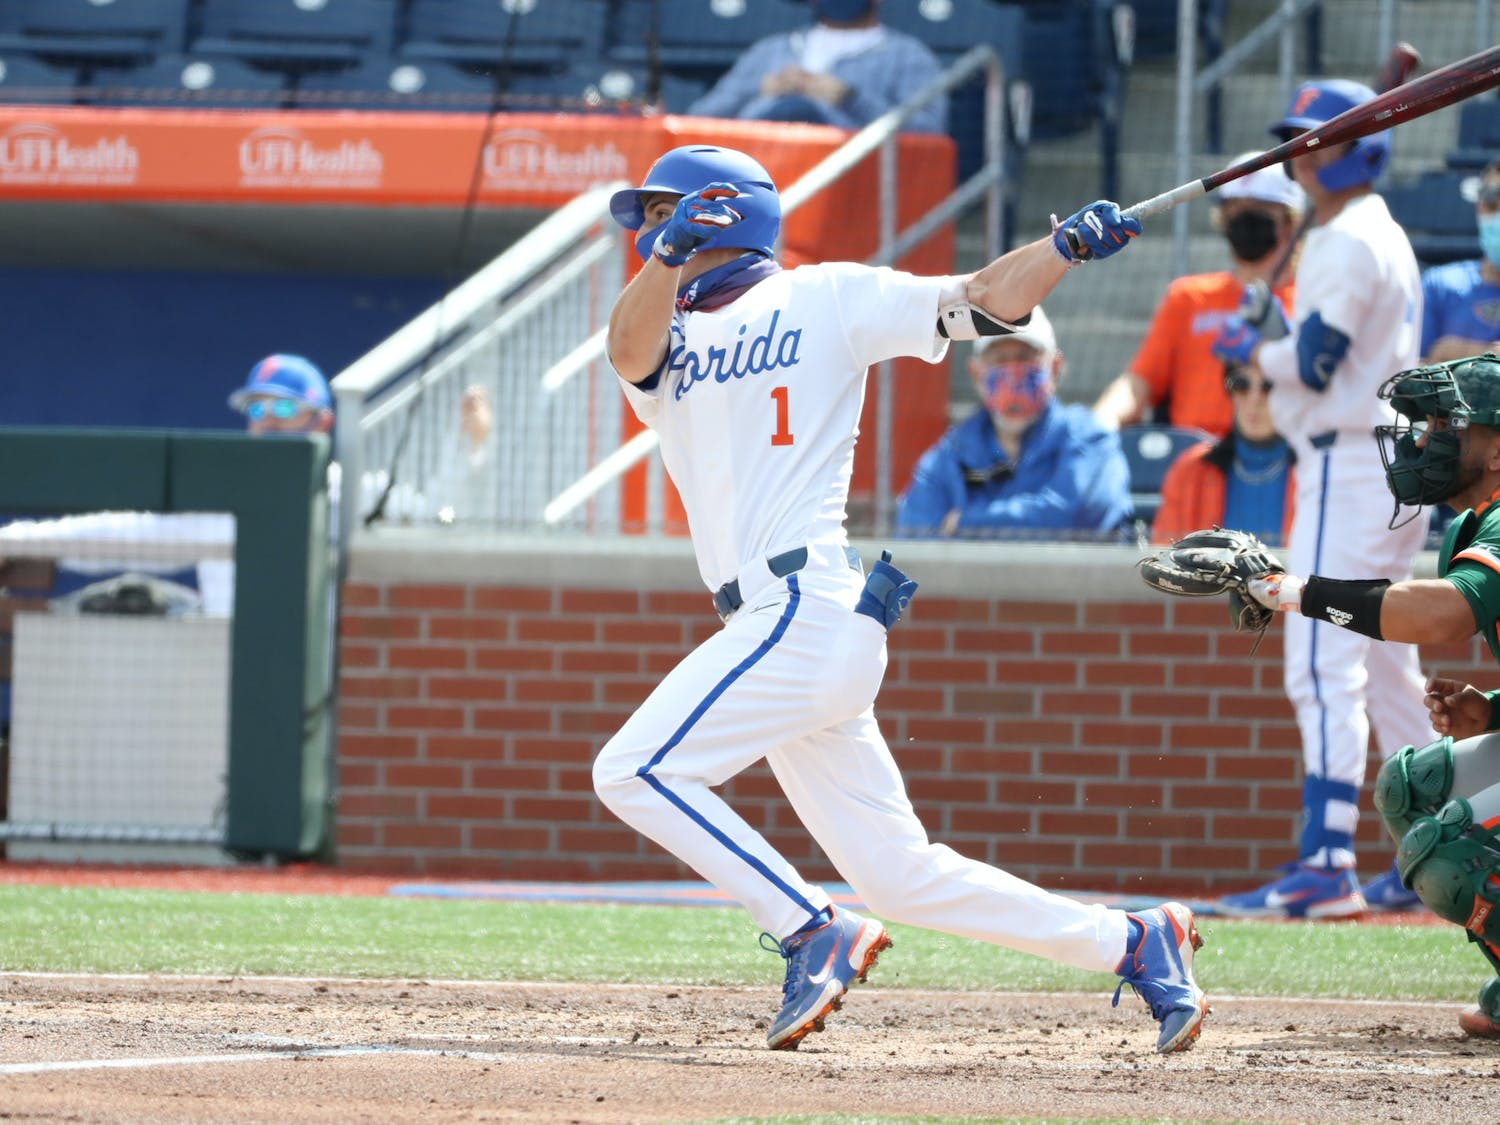 Young's hit-streak extended to 30 games over 646 days as he broke Tim Olson's longest hit-streak record in Gators baseball history. Photo from UF-UM game Feb. 21. Courtesy of the SEC Media Portal.